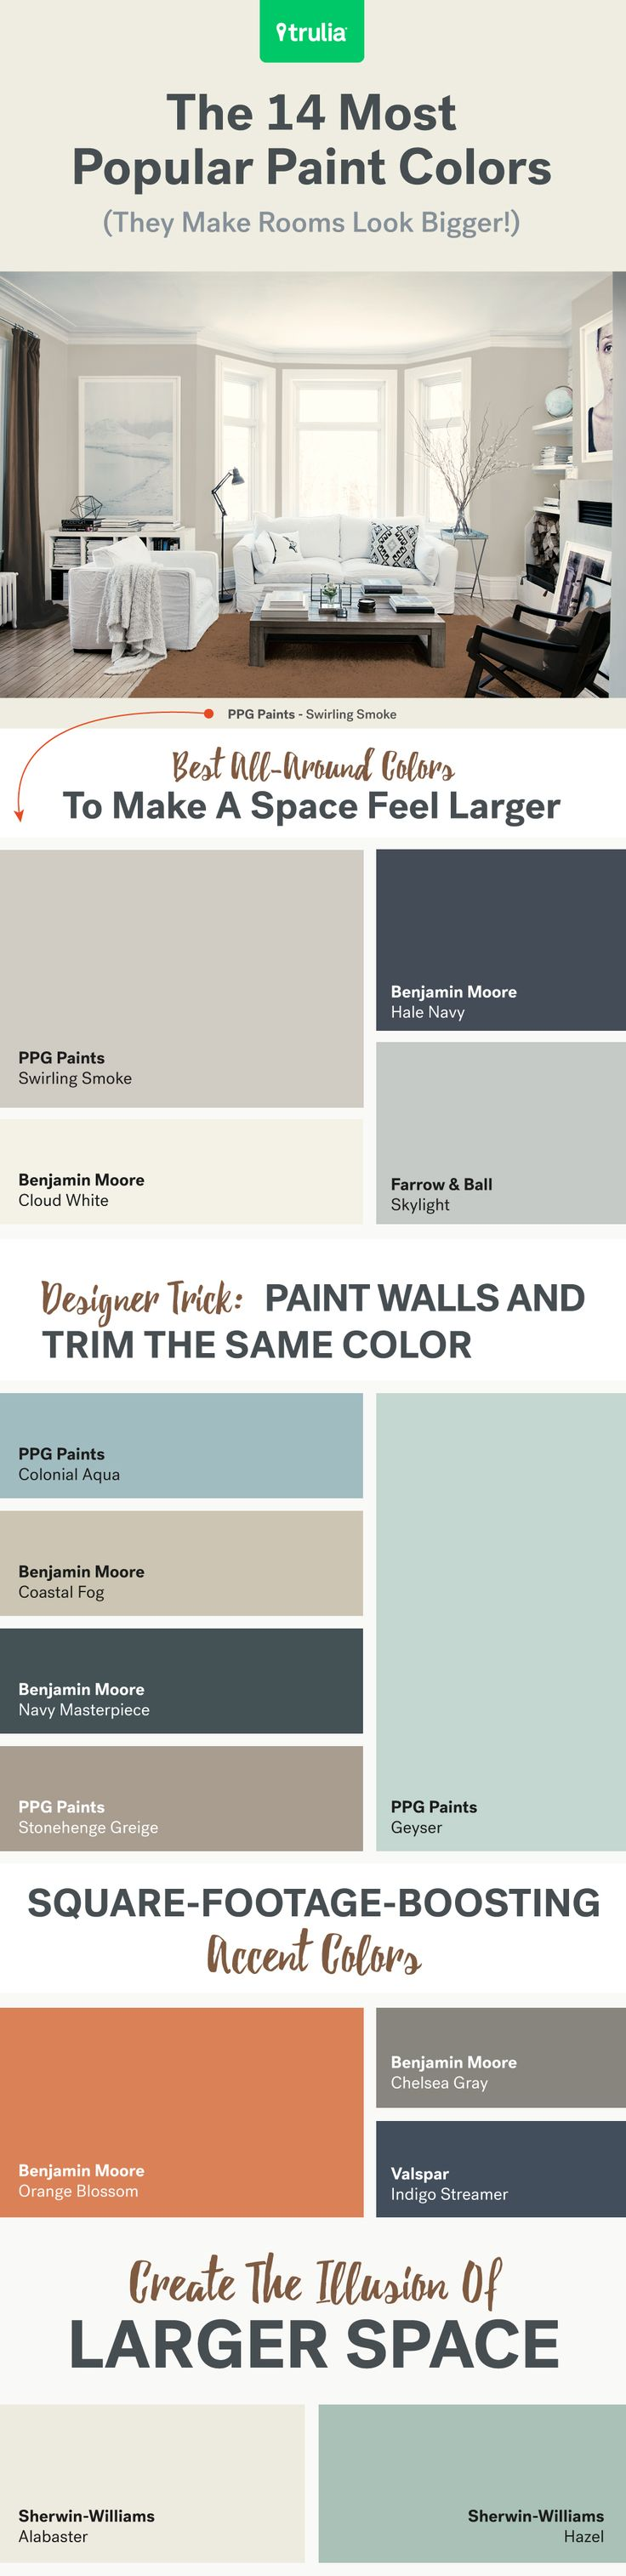 Living Room Wall Color 17 Best Ideas About Living Room Wall Colors On Pinterest Living